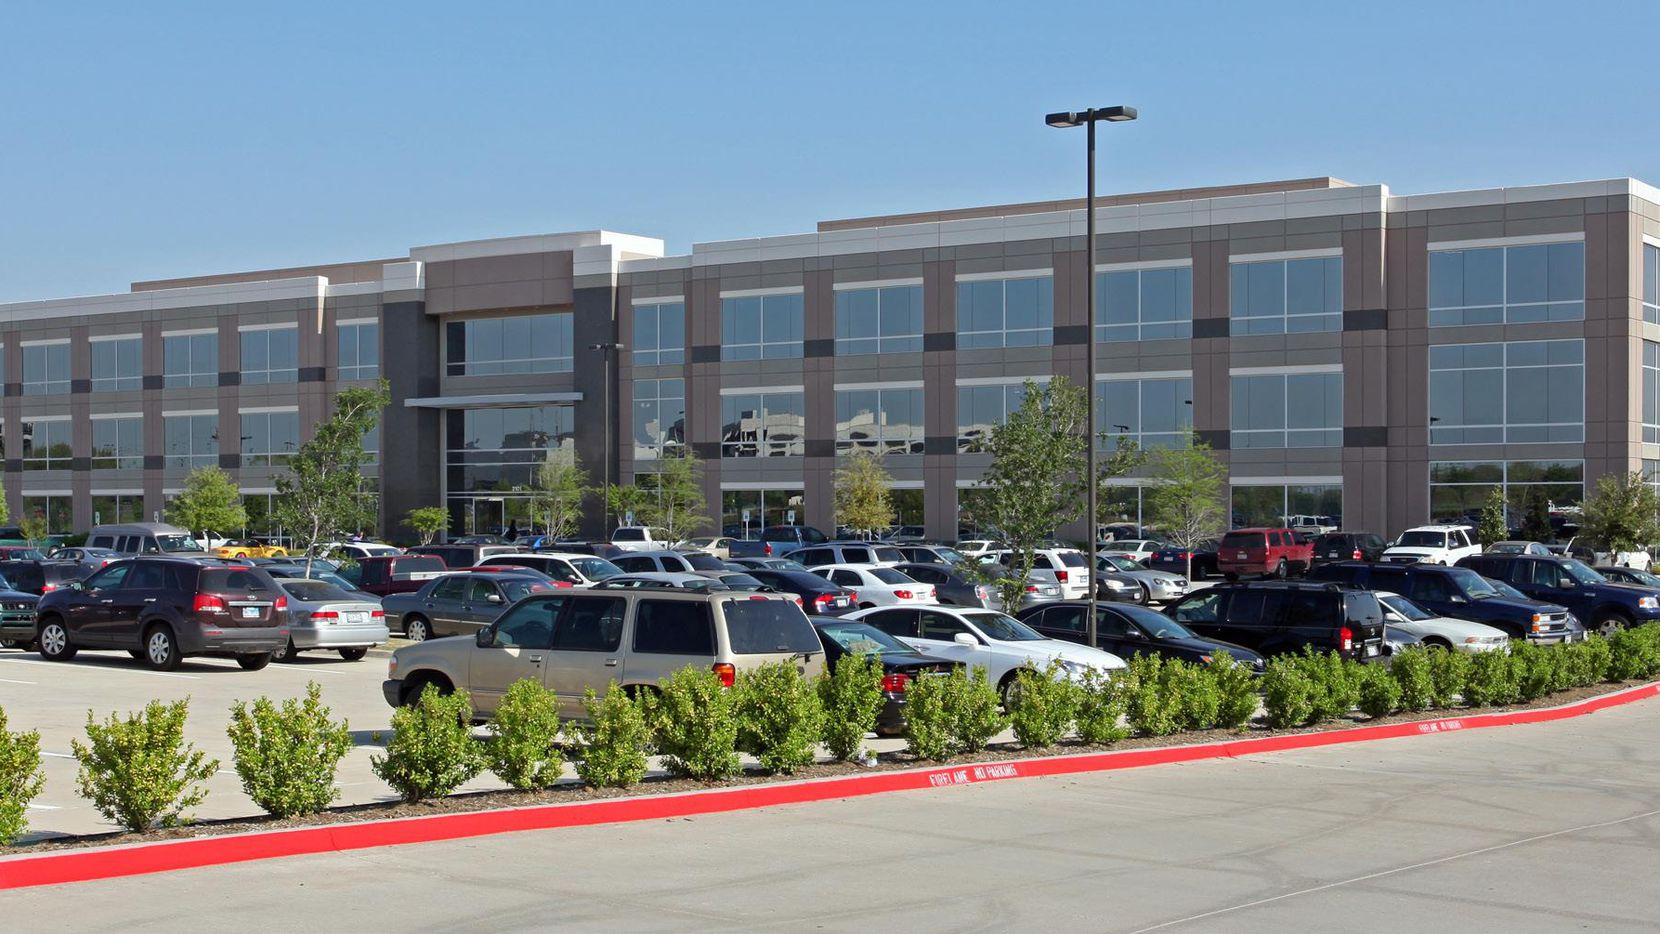 Exeter Finance has leased the Carpenter Corporate Center building at 2101 W. John Carpenter Fwy. in Irving.